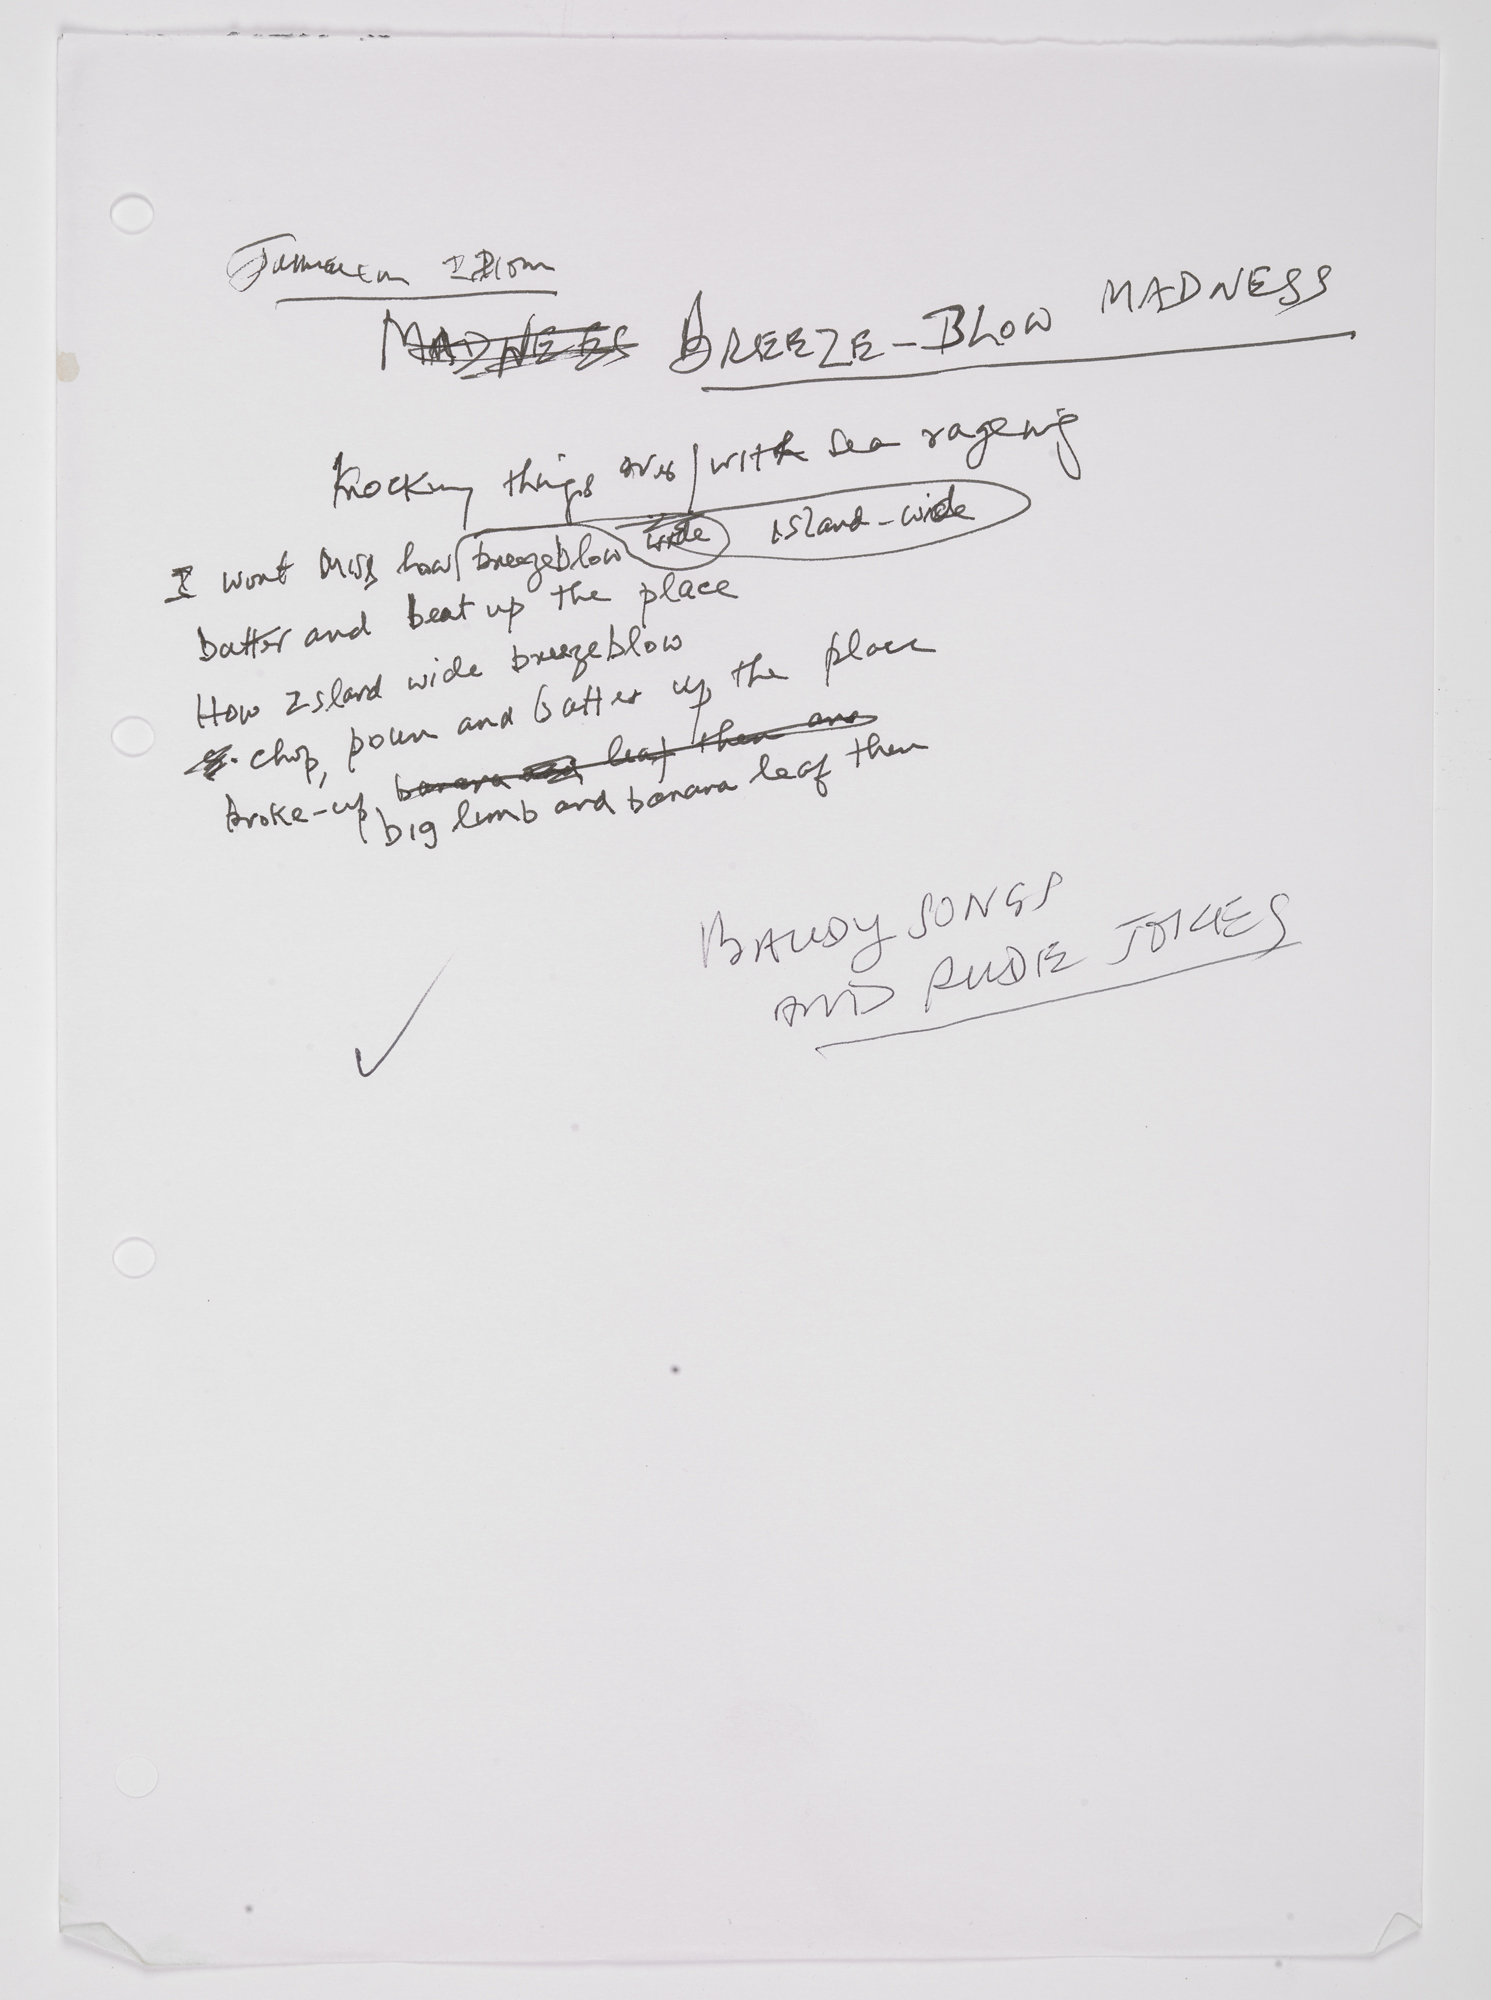 Whitehall Turnin We Back - manuscript draft by James Berry for his collection: Windrush Songs